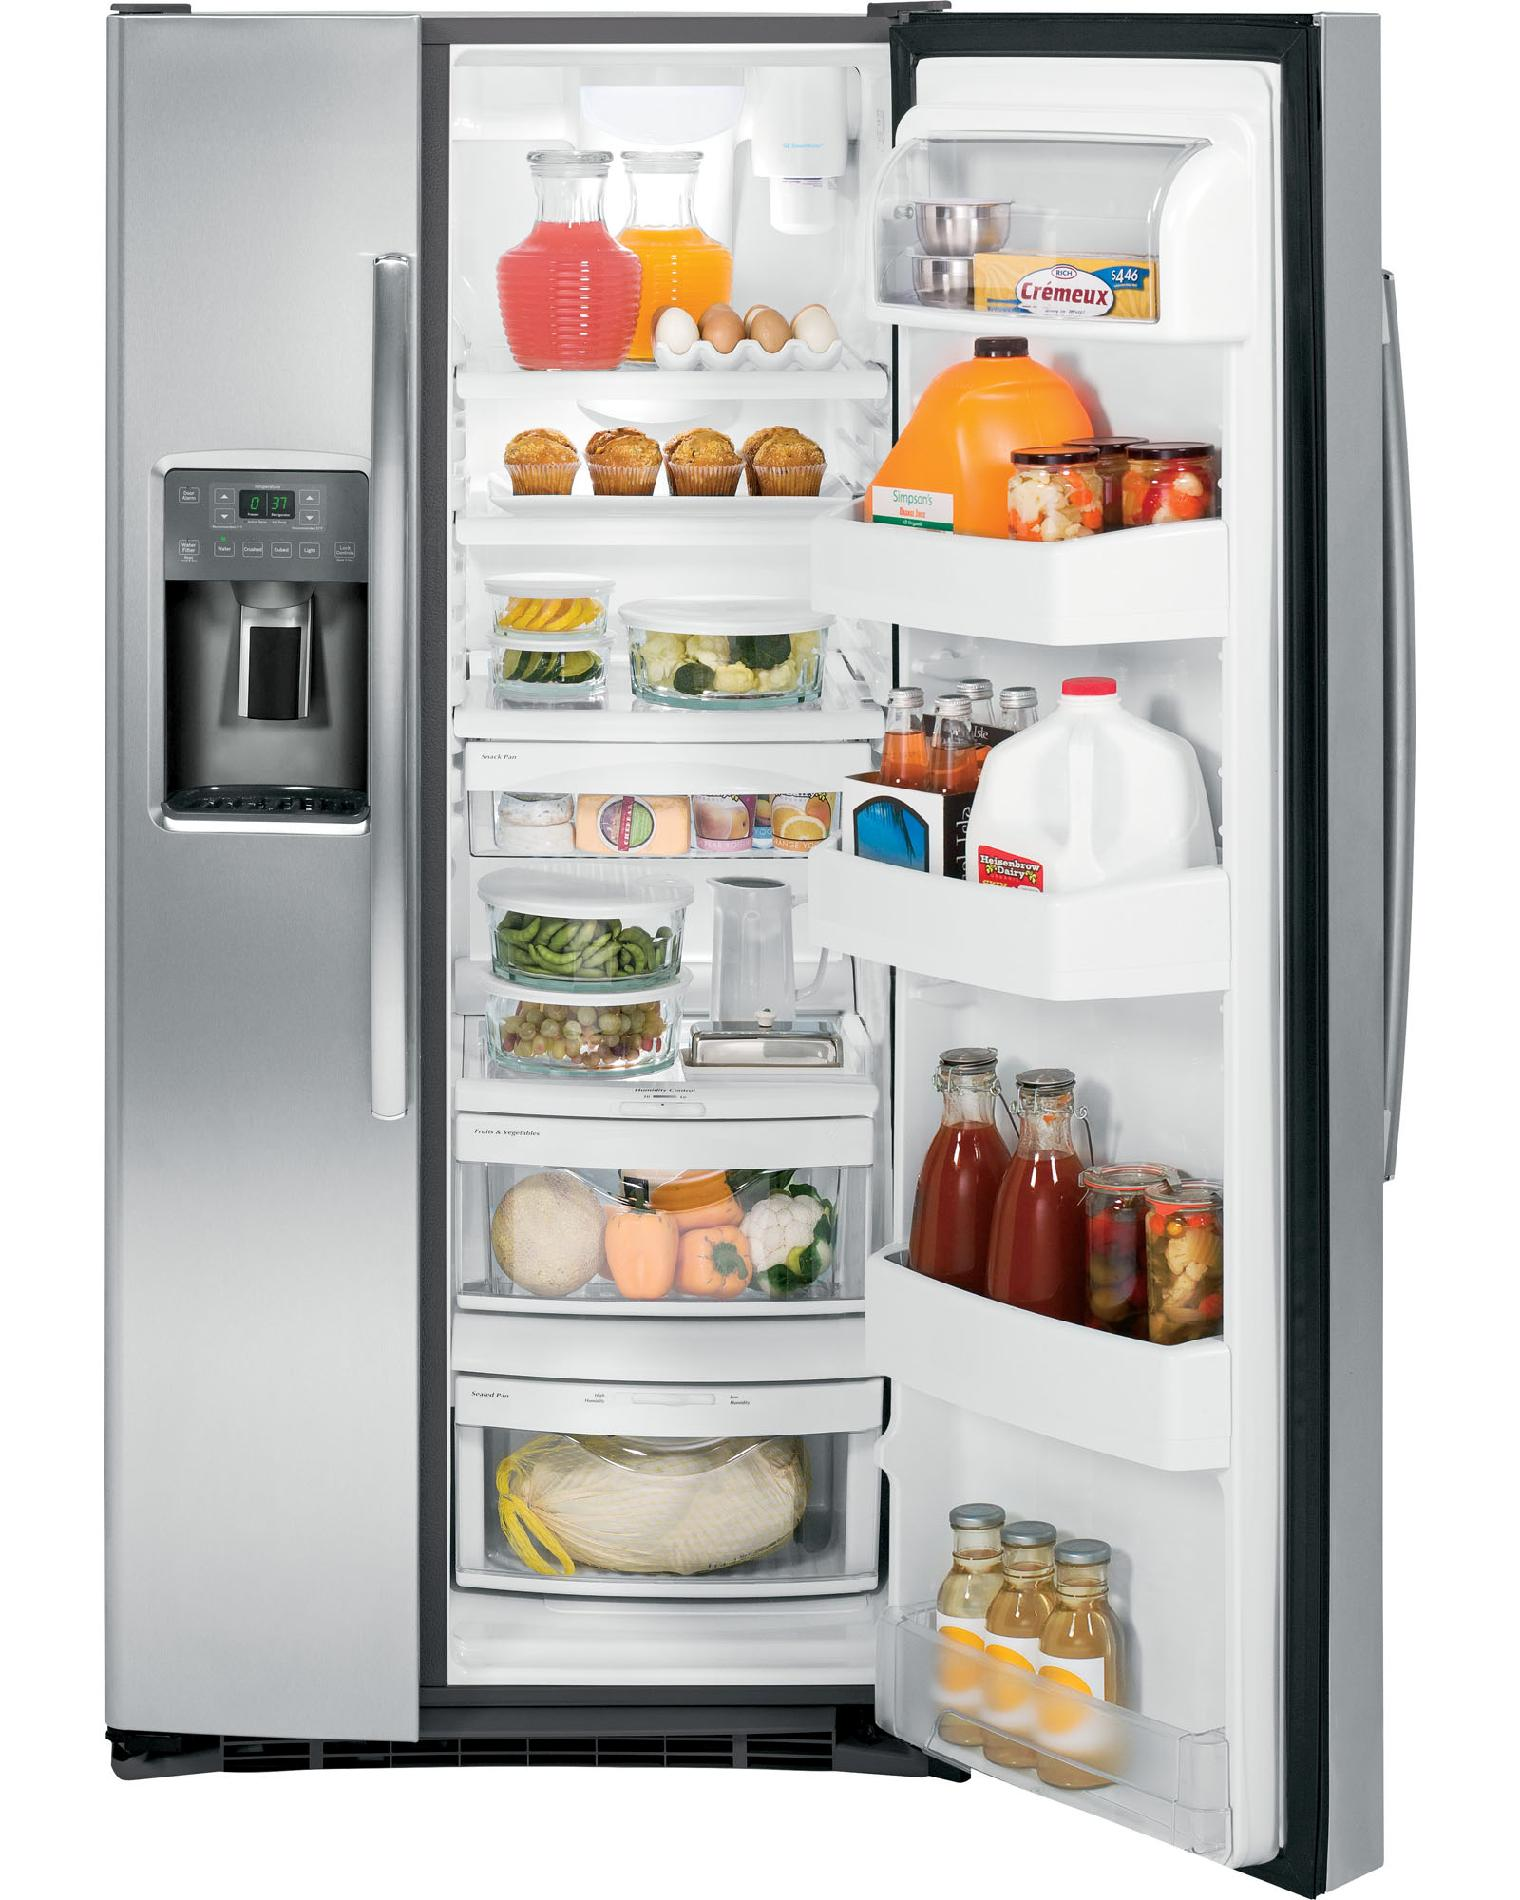 GE Appliances 23.1 cu. ft. Side-By-Side Refrigerator w/ Dispenser – Stainless Steel